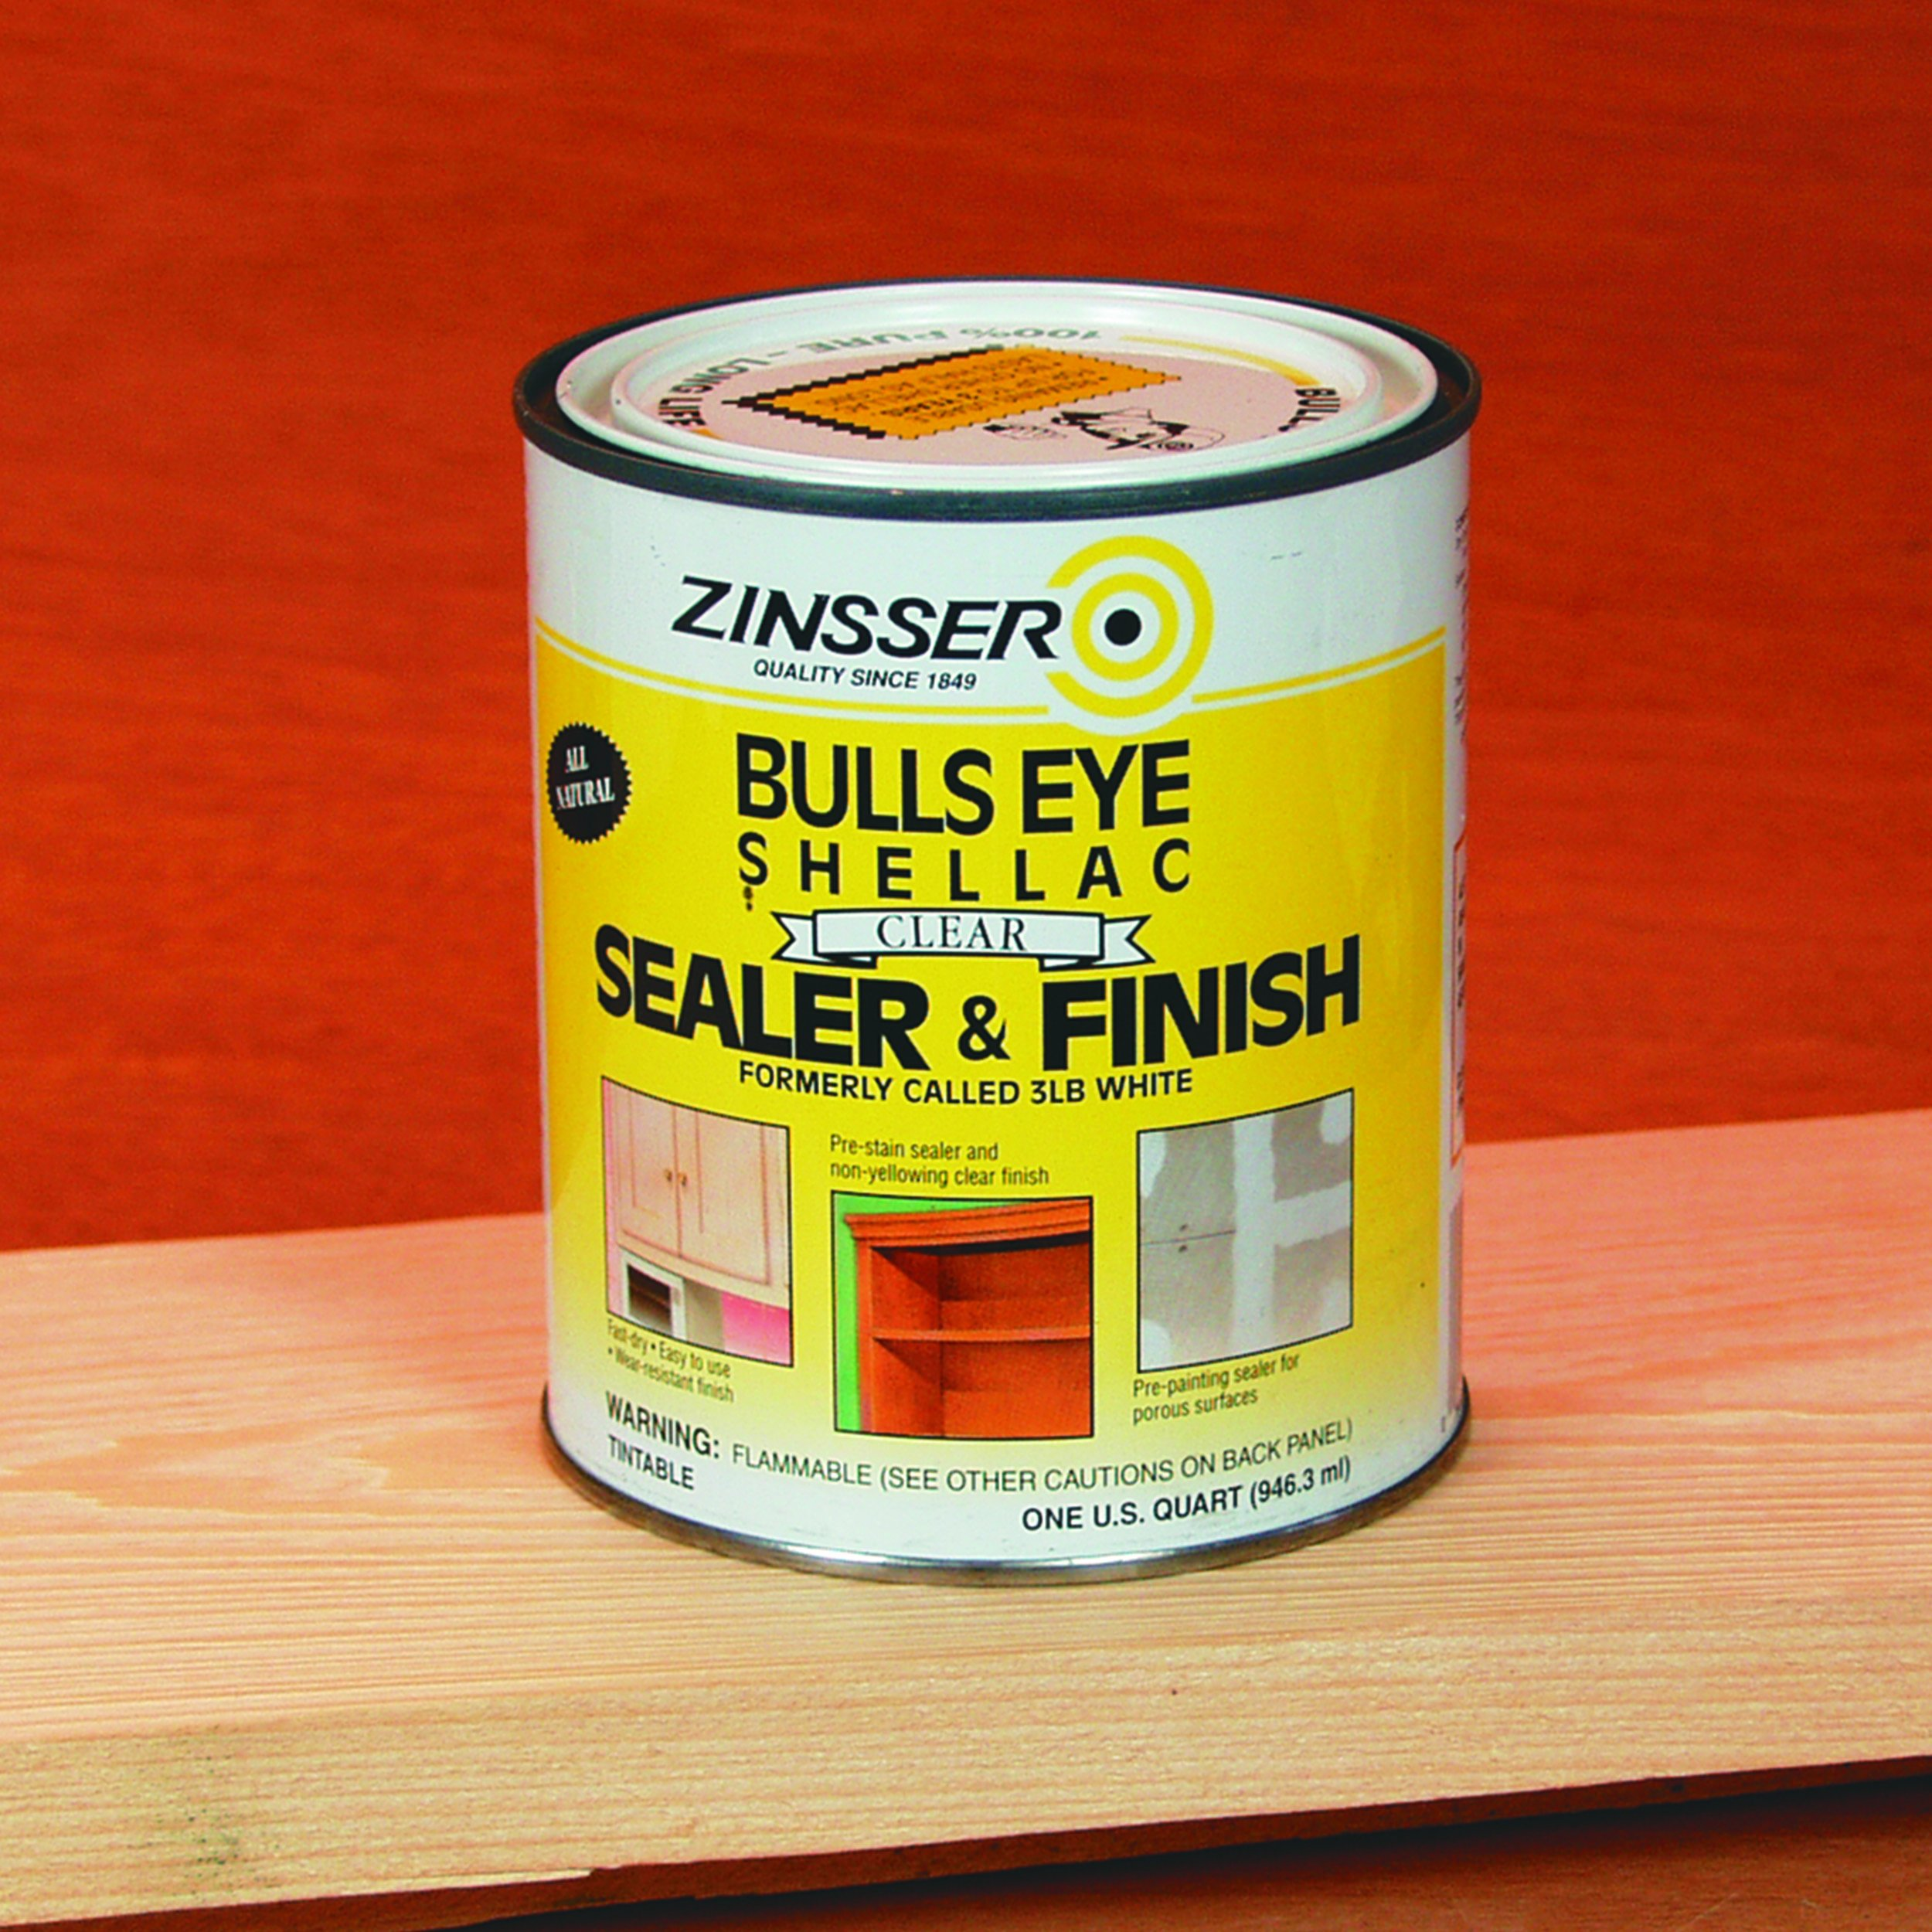 Rust-Oleum Zinsser 304H 1-Quart Bulls Eye Clear Shellac